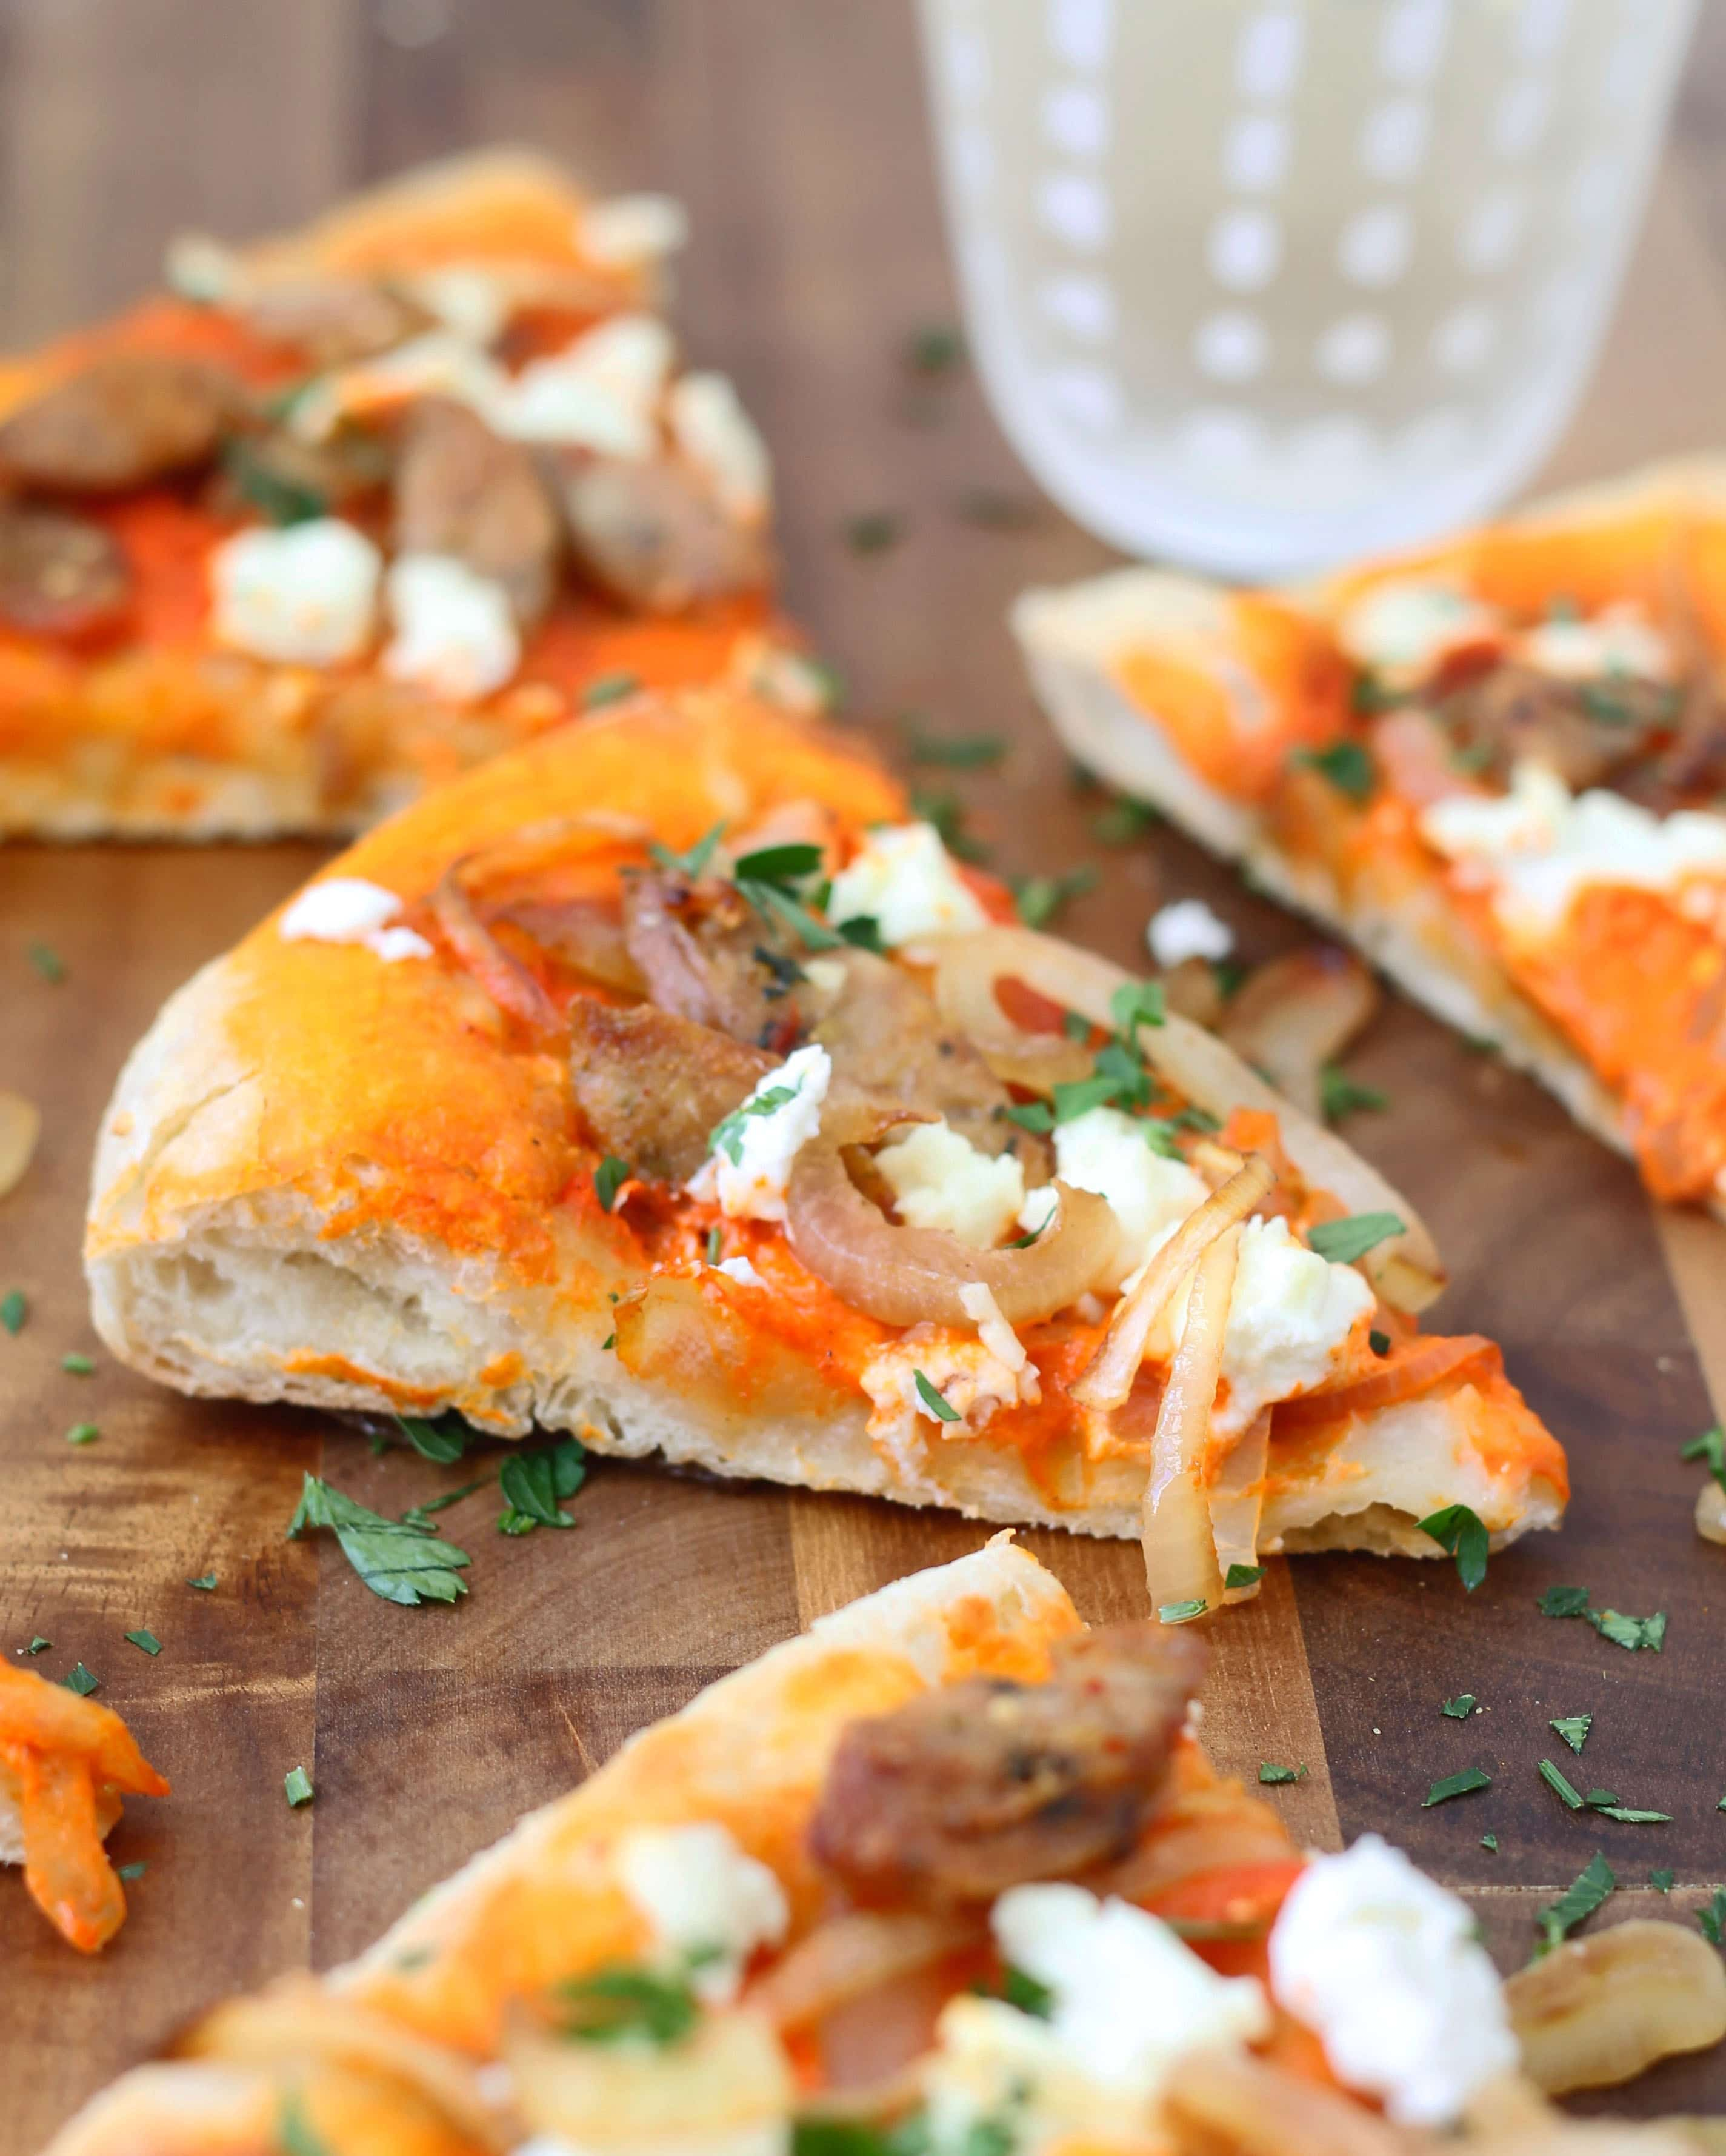 ... Red Pepper Pizza with Goat Cheese, Chicken Sausage and Caramelized